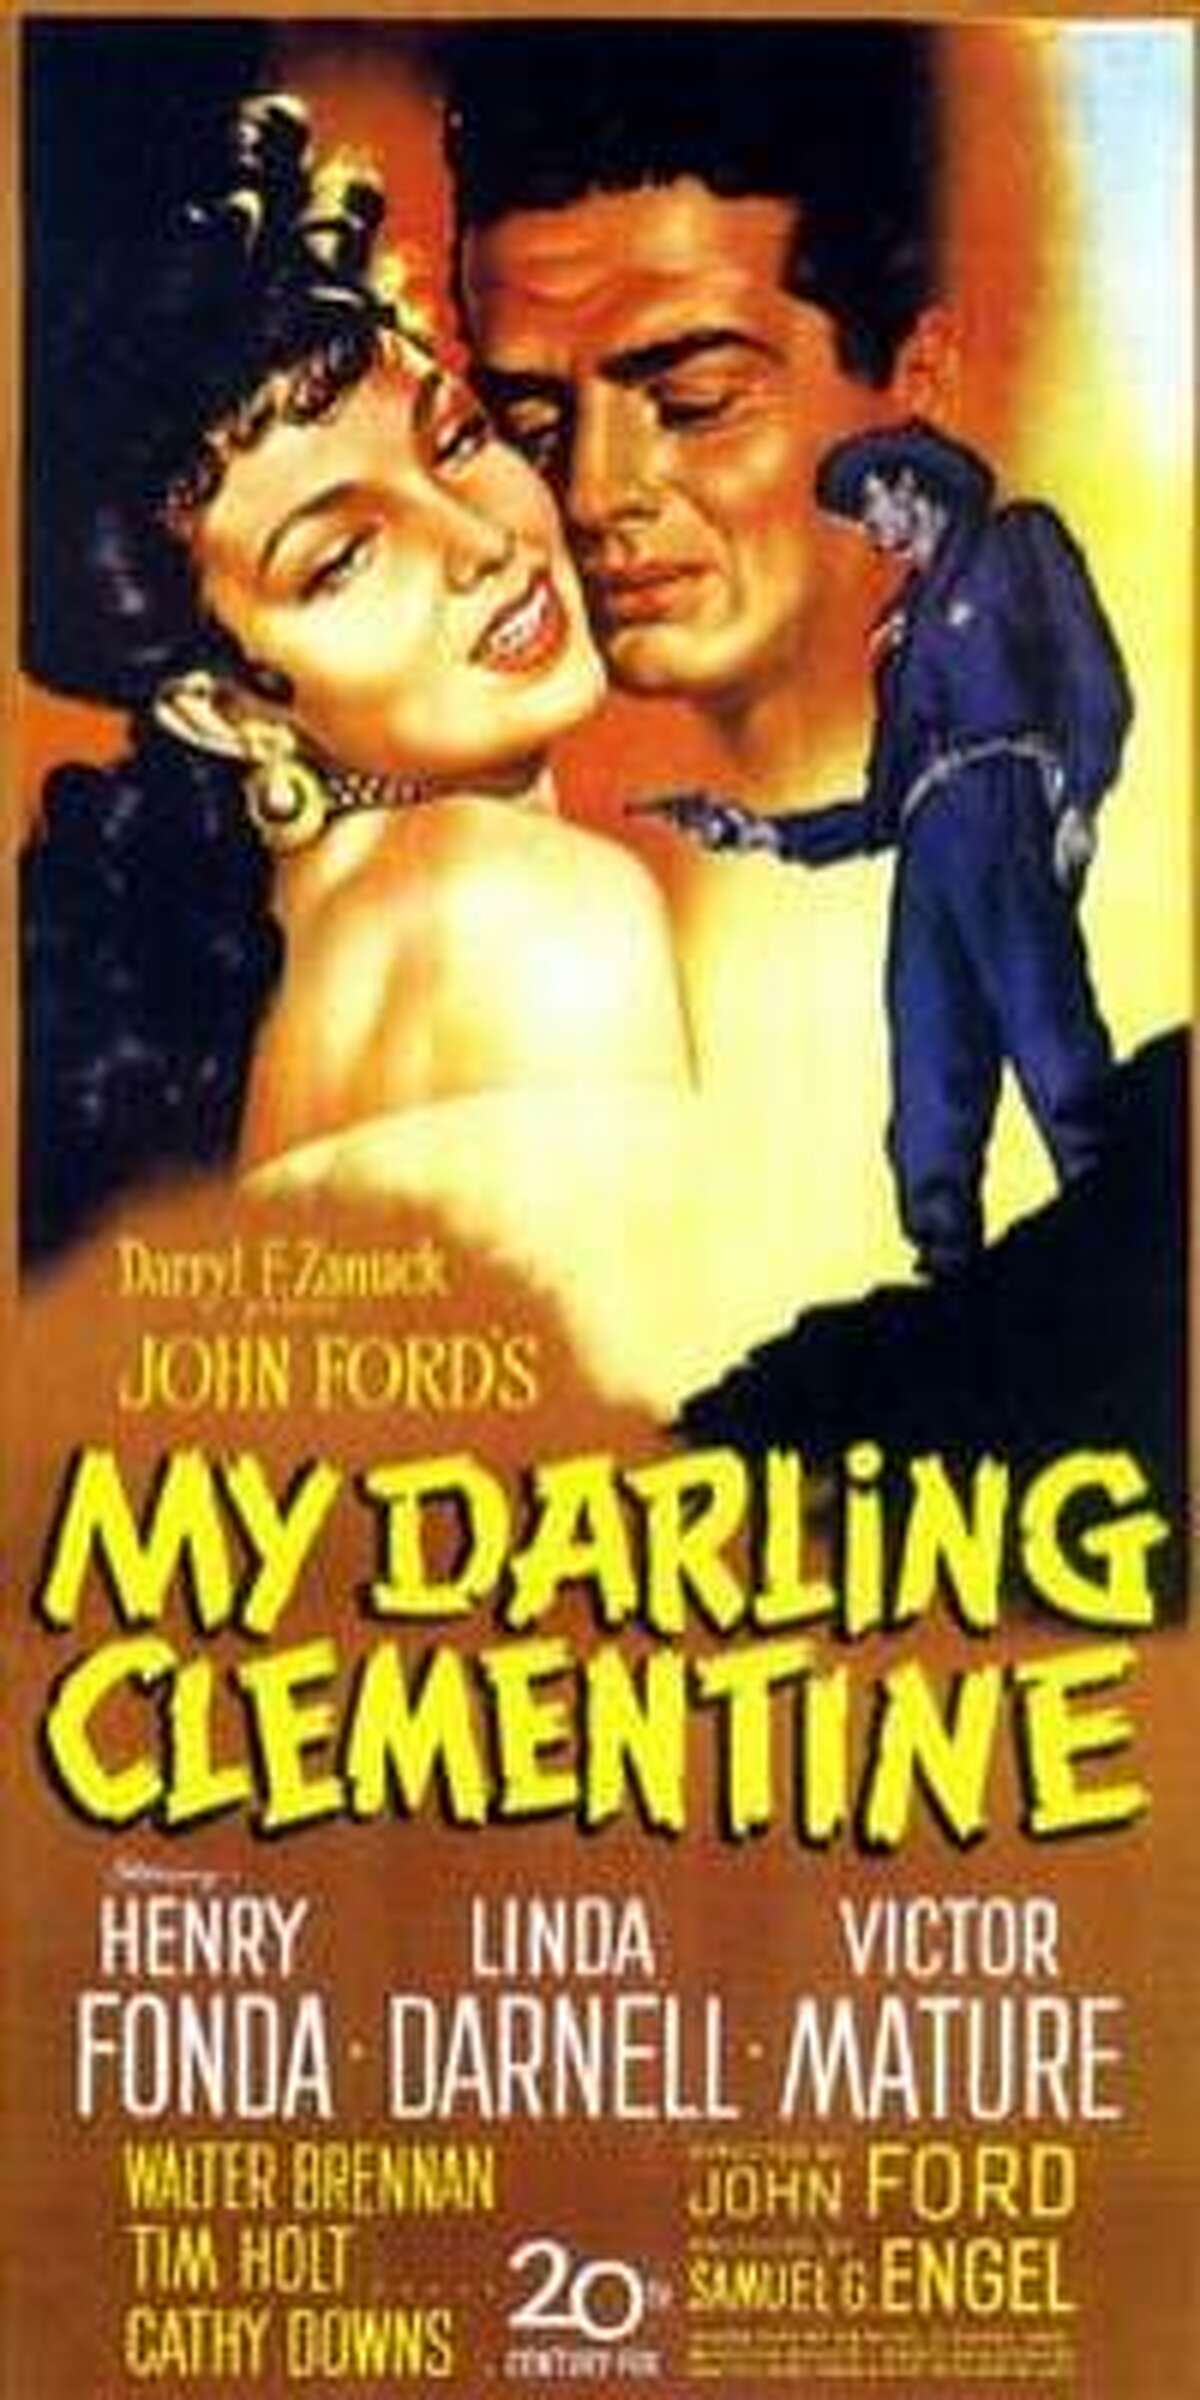 My Darling Clementine (1946): Henry Fonda stars in Ford's version of the Wyatt Earp/Tombstone story. Dated but stacked with wonderful moments, beautiful scenes, powerful emotions and some good action. More myth than truth. Walter Brennan is deliciously evil as Old Man Clanton.